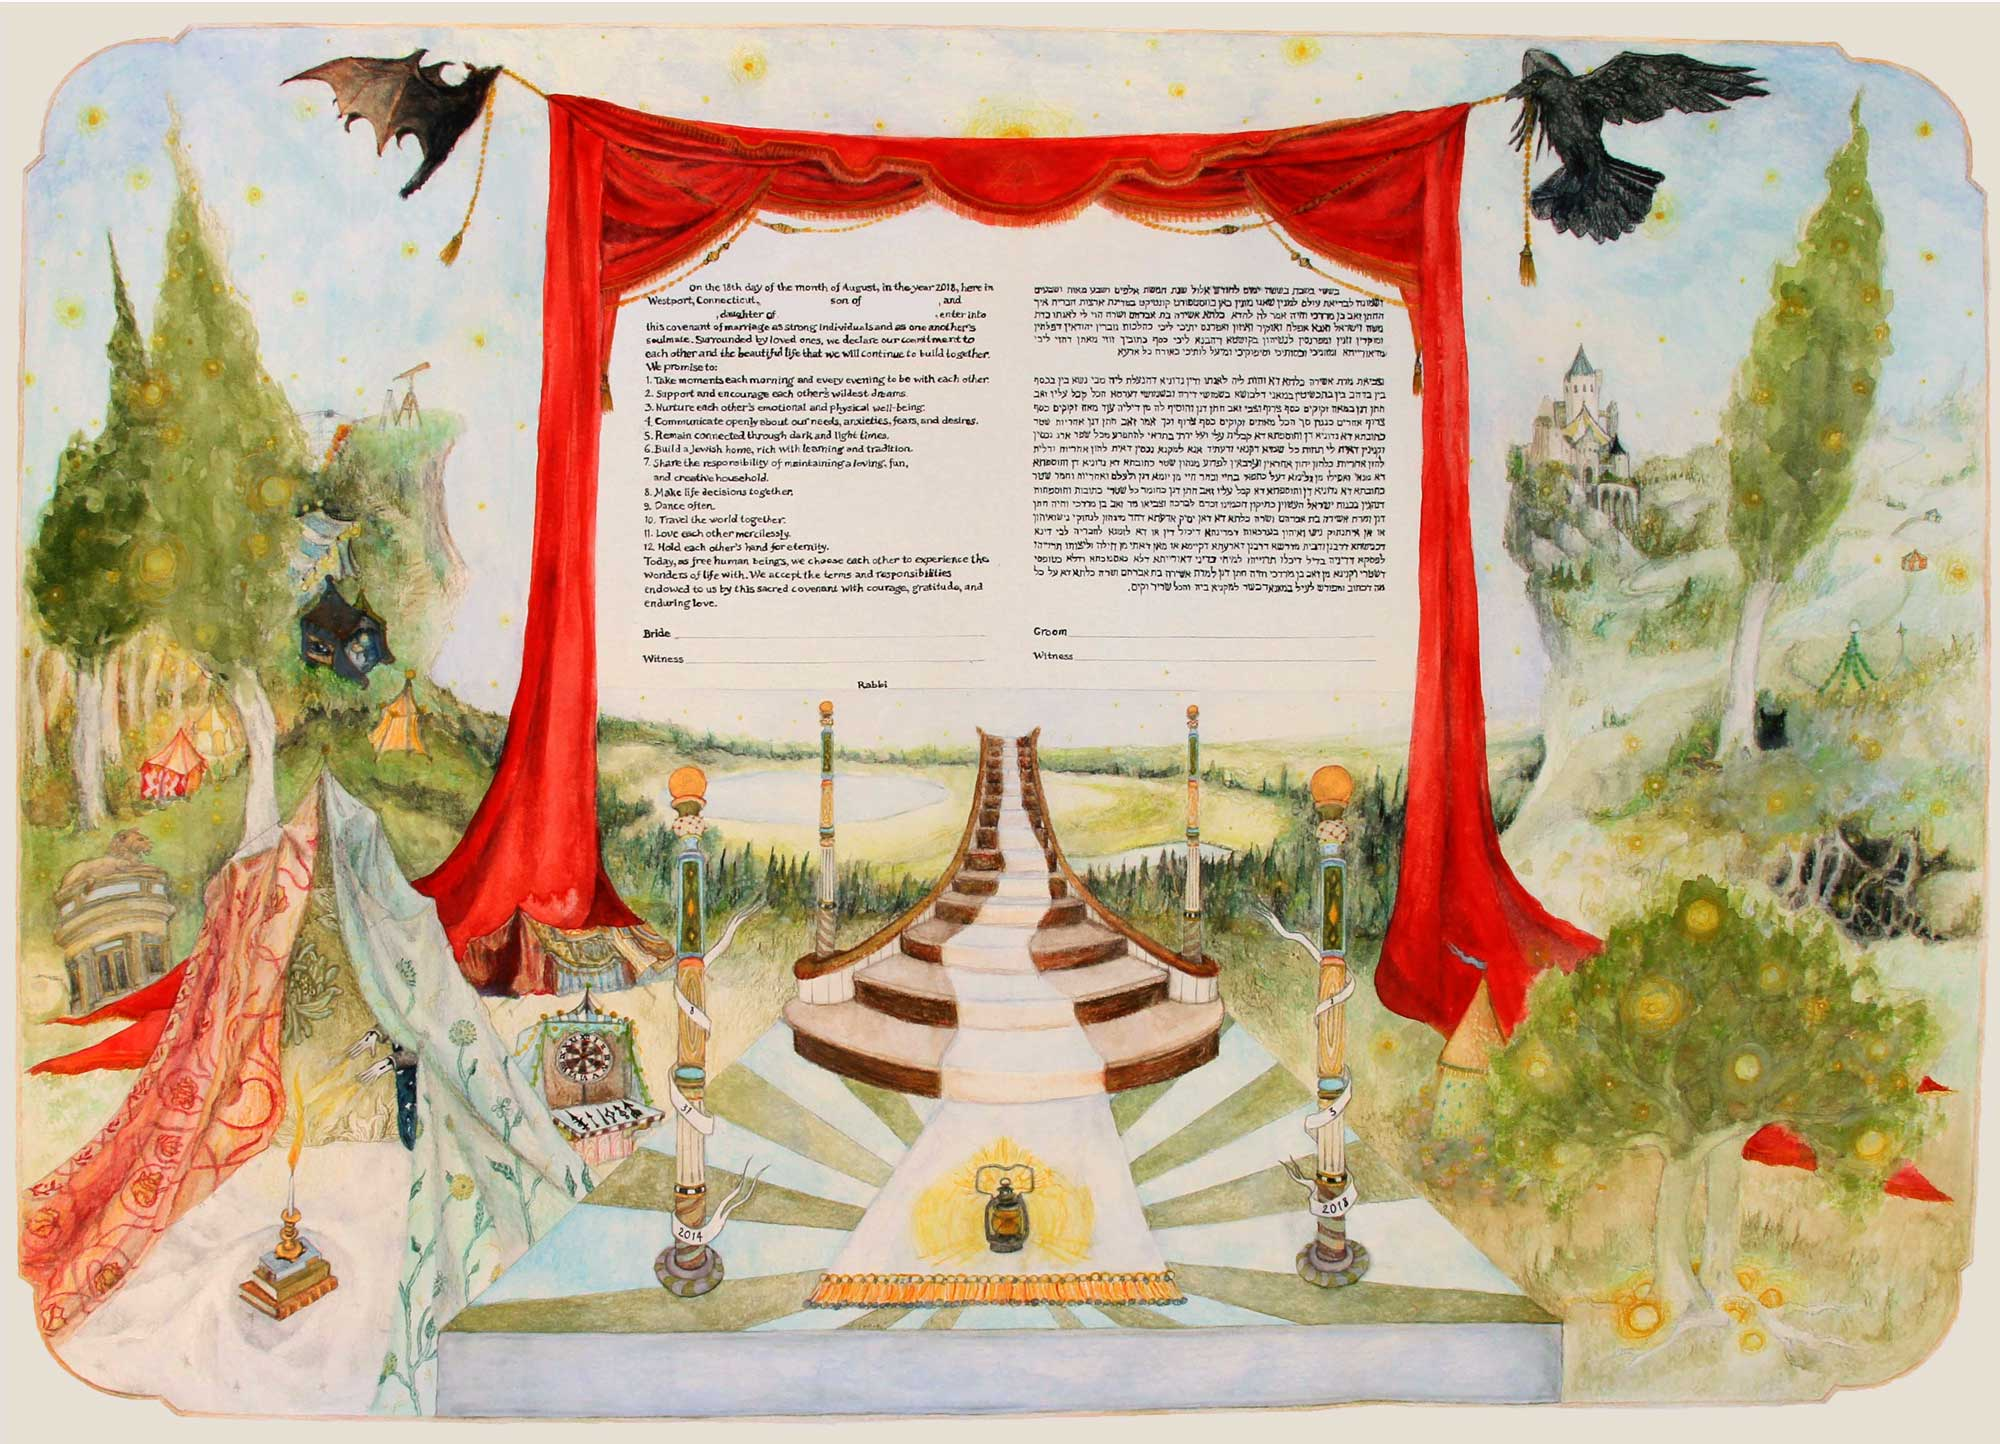 This is an example of a narrative ketubah based on the couple's personal love story.